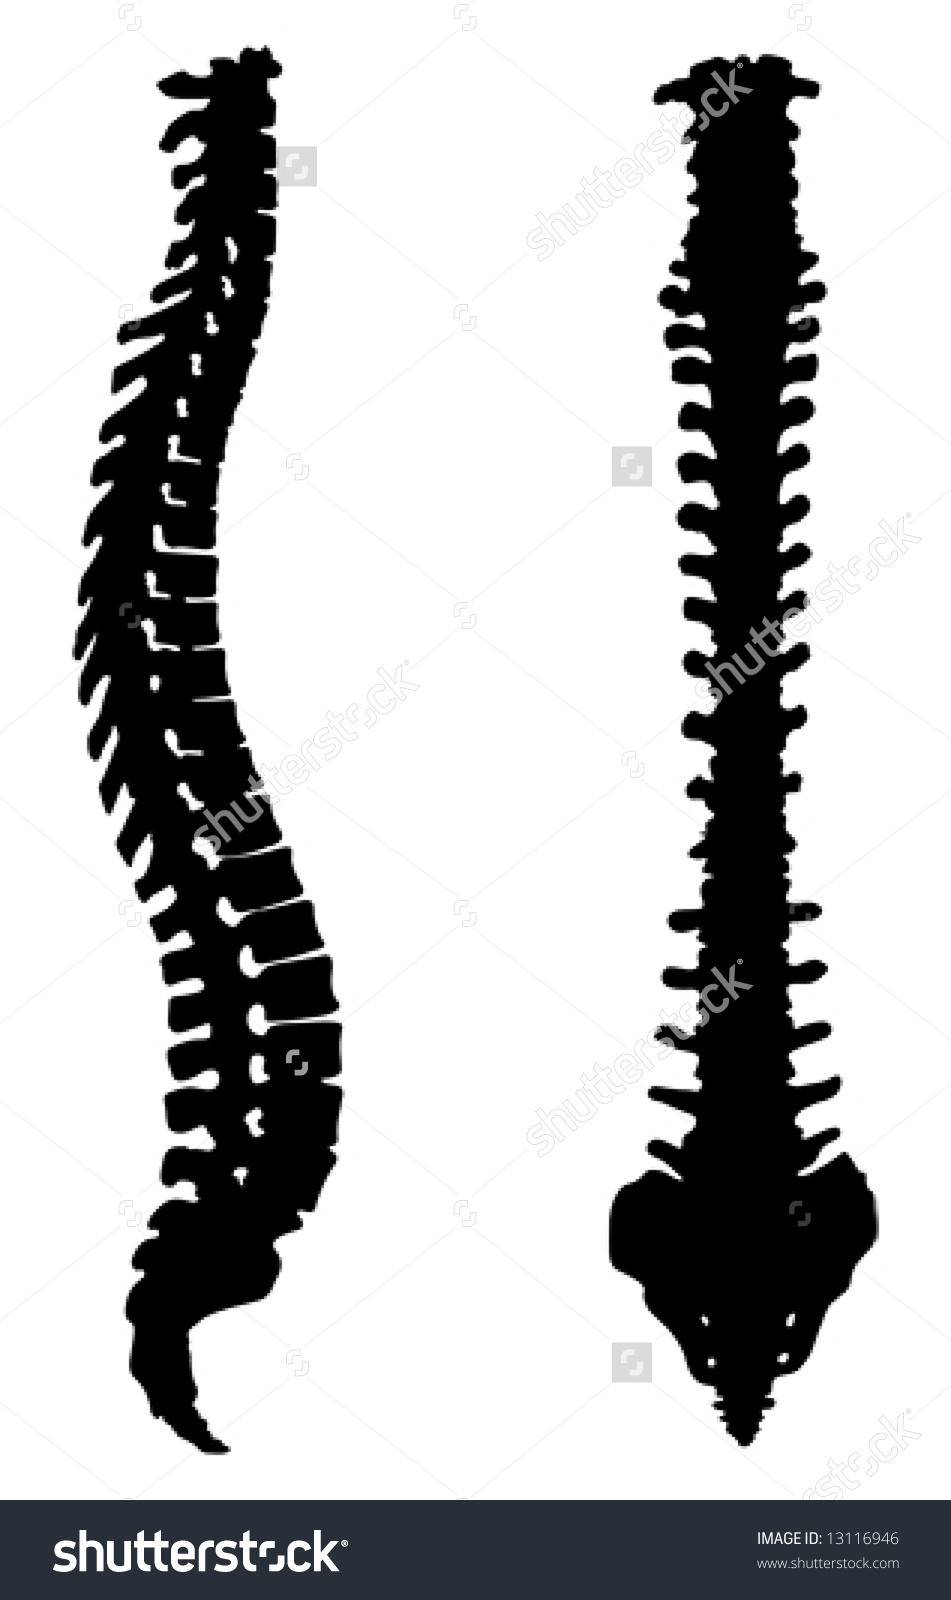 Frontal Lateral View Human Spinal Column Stock Vector 13116946.